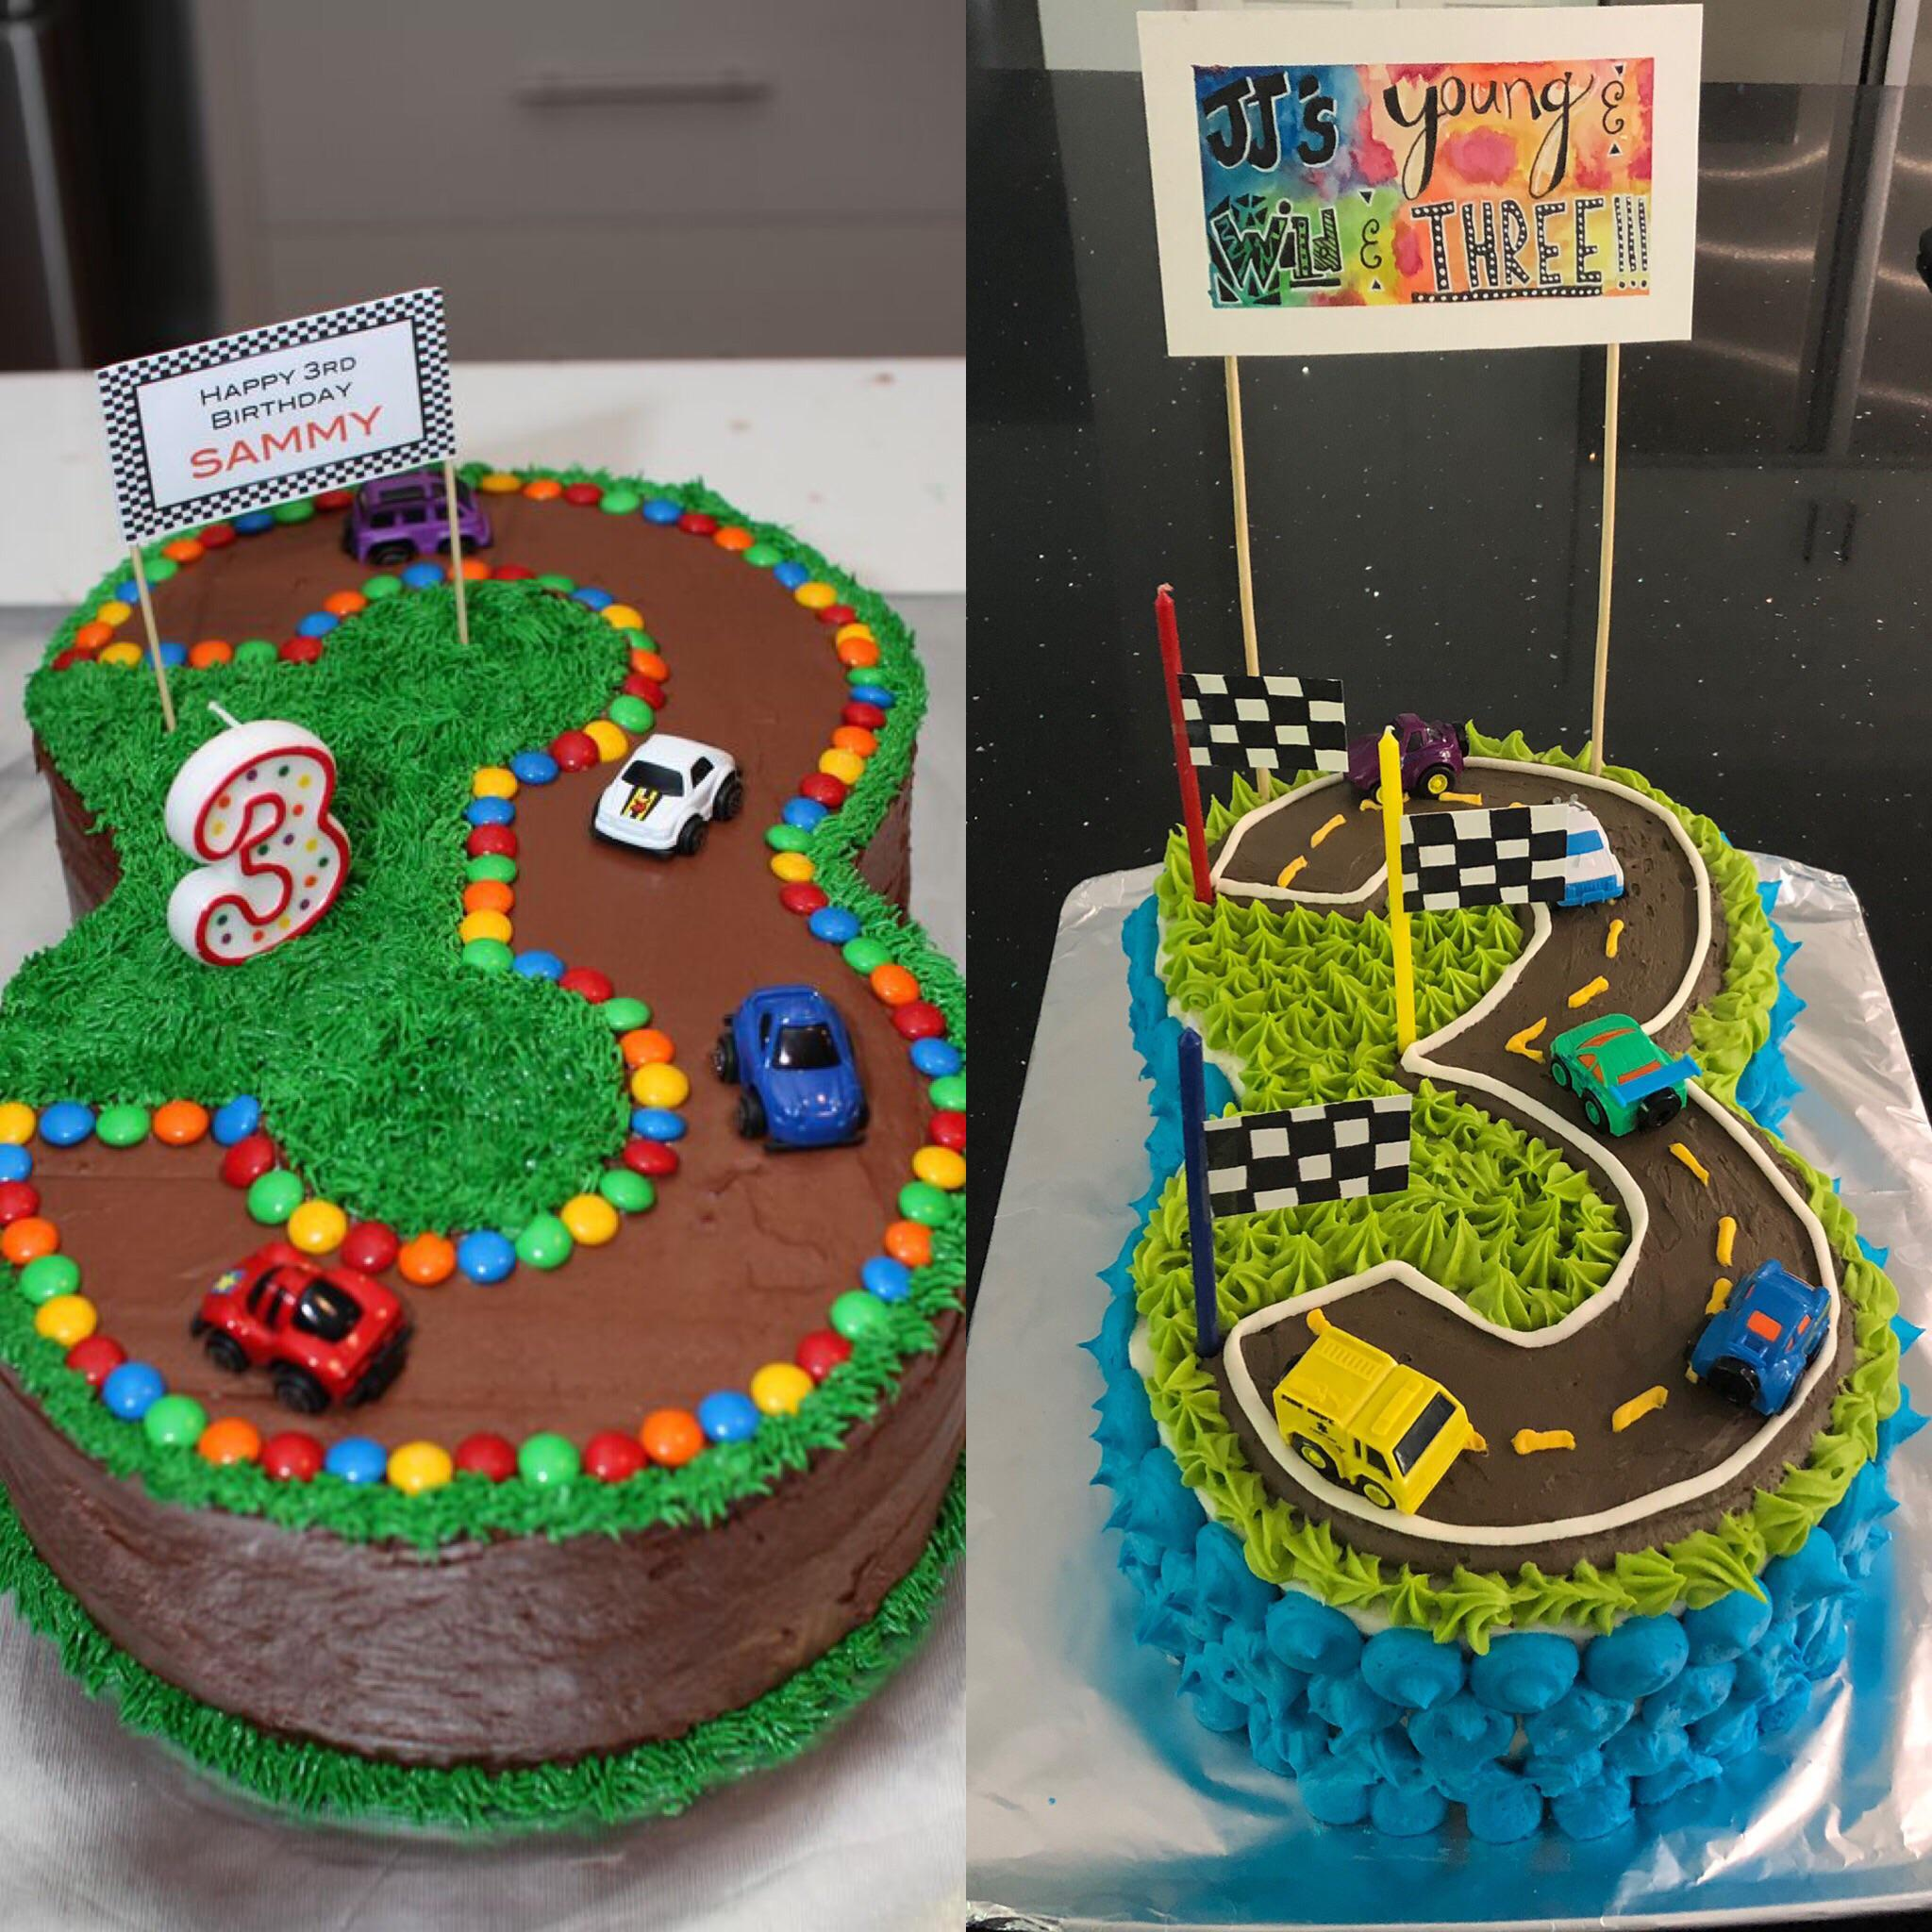 Trying To Recreate A Pinterest Birthday Cake For A 3 Year Old Pinterest On Left My Version On The Right Expectationvsreality